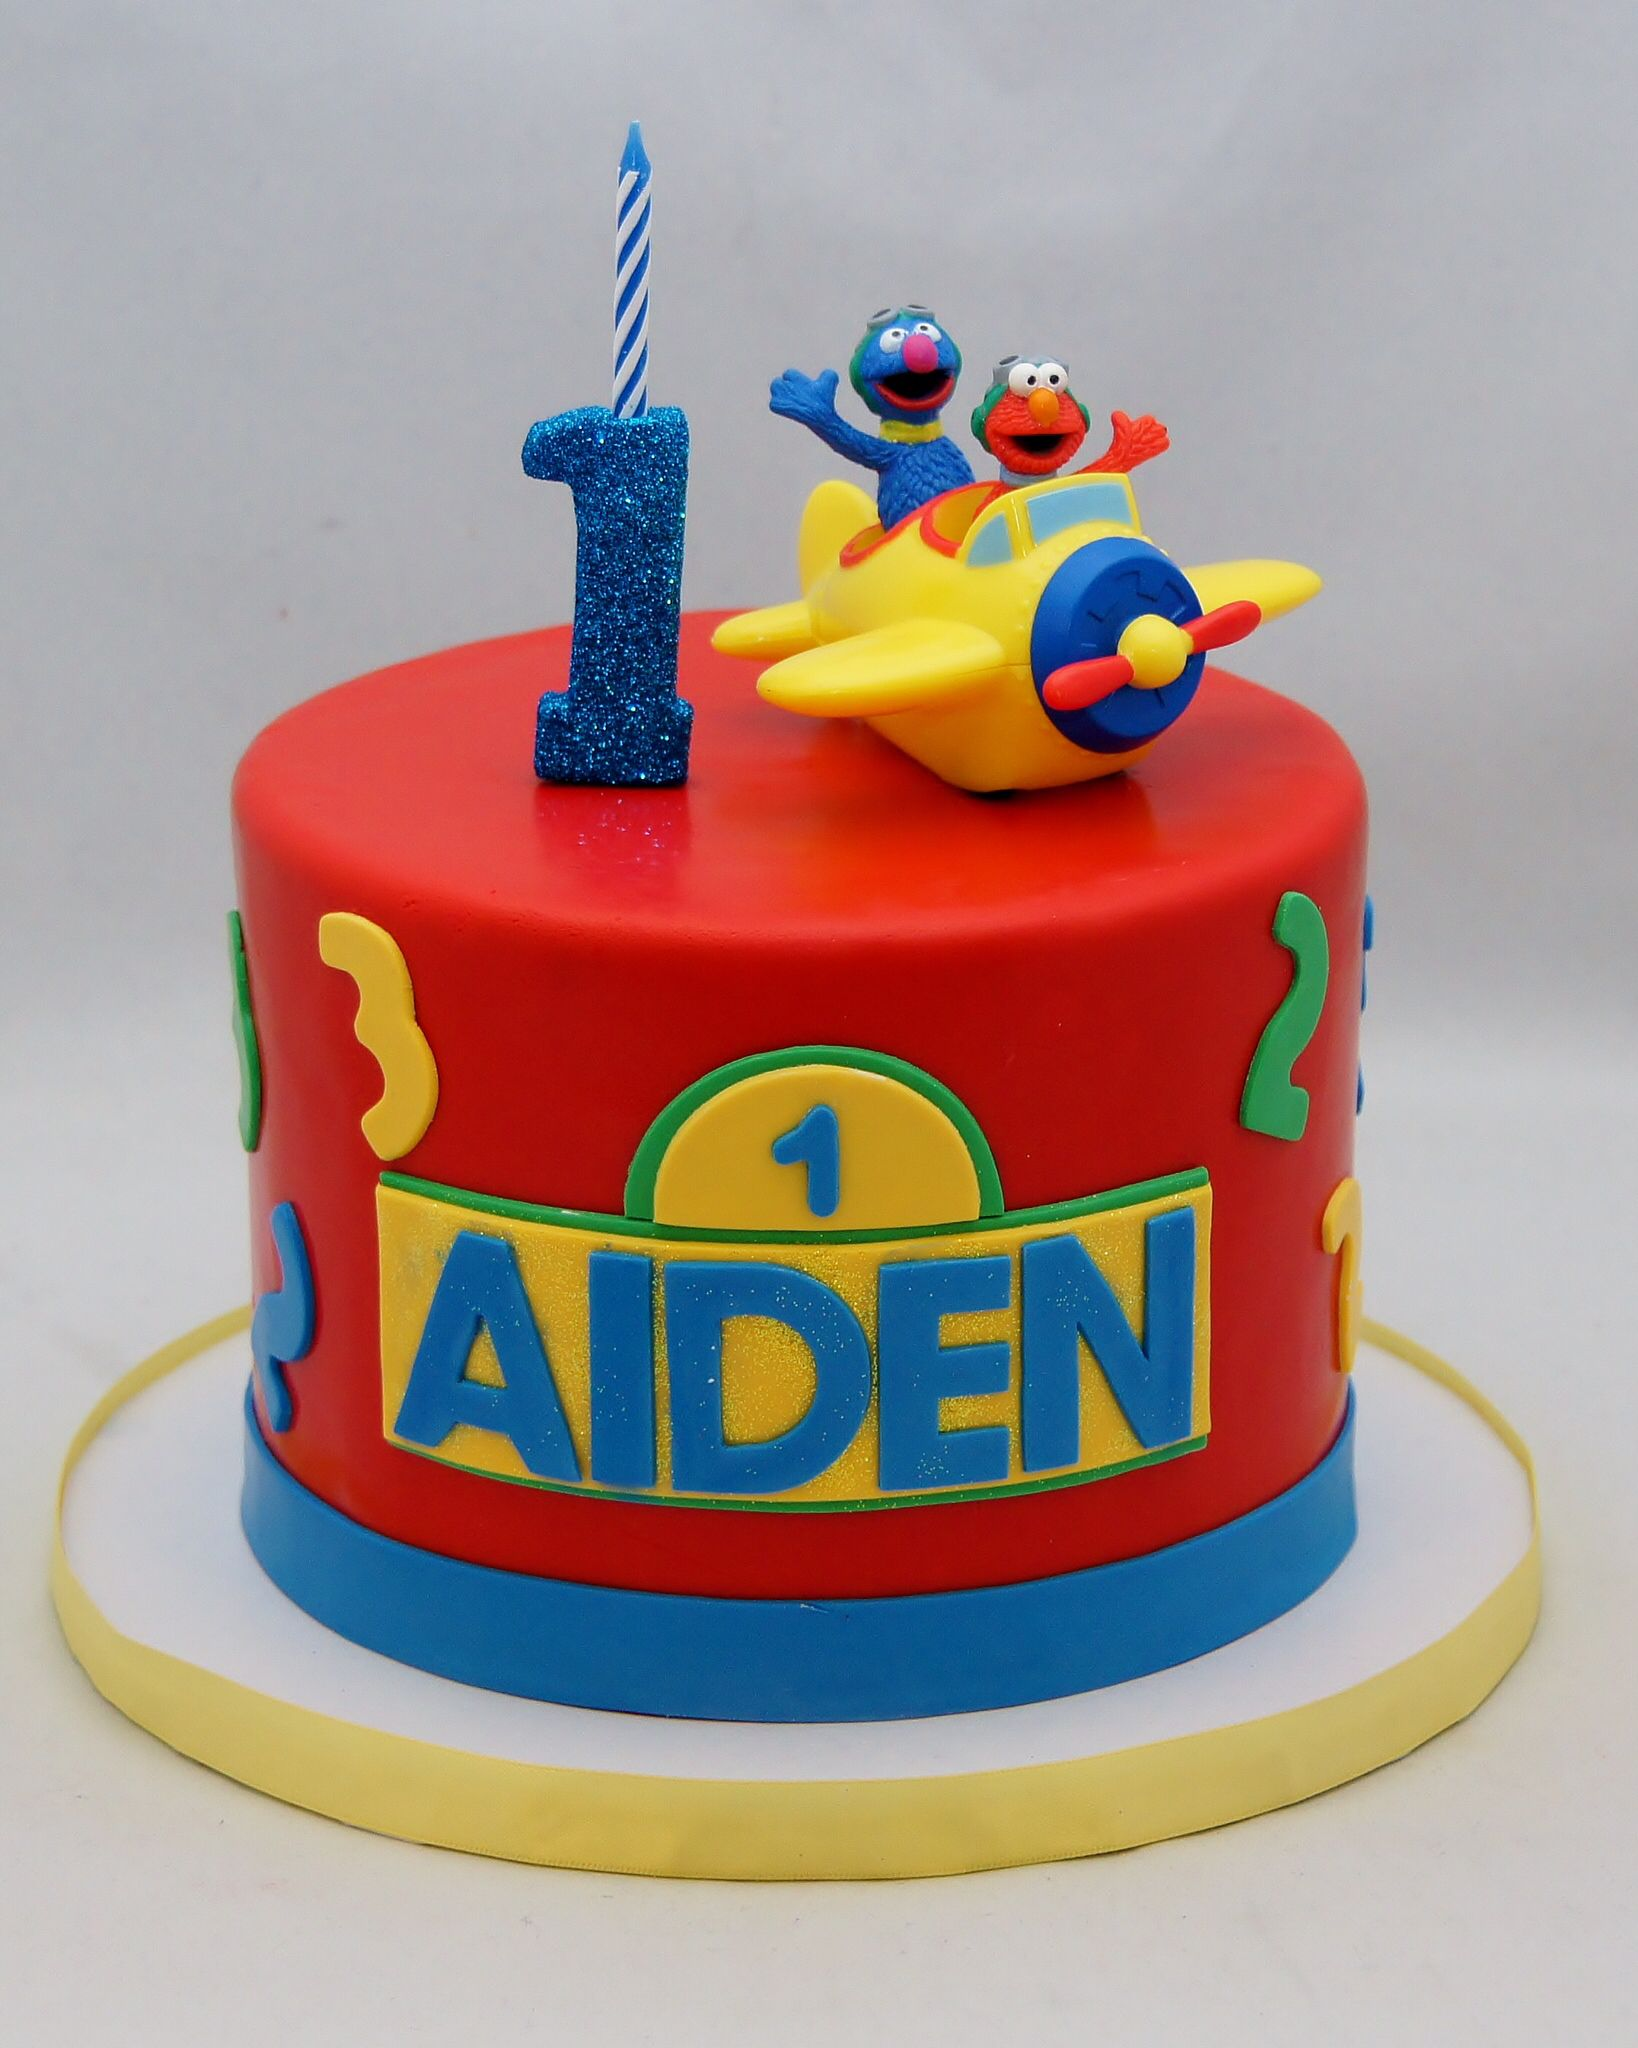 3D Gum Paste 1 Candle And Elmo Grover Keepsake Cake Topper